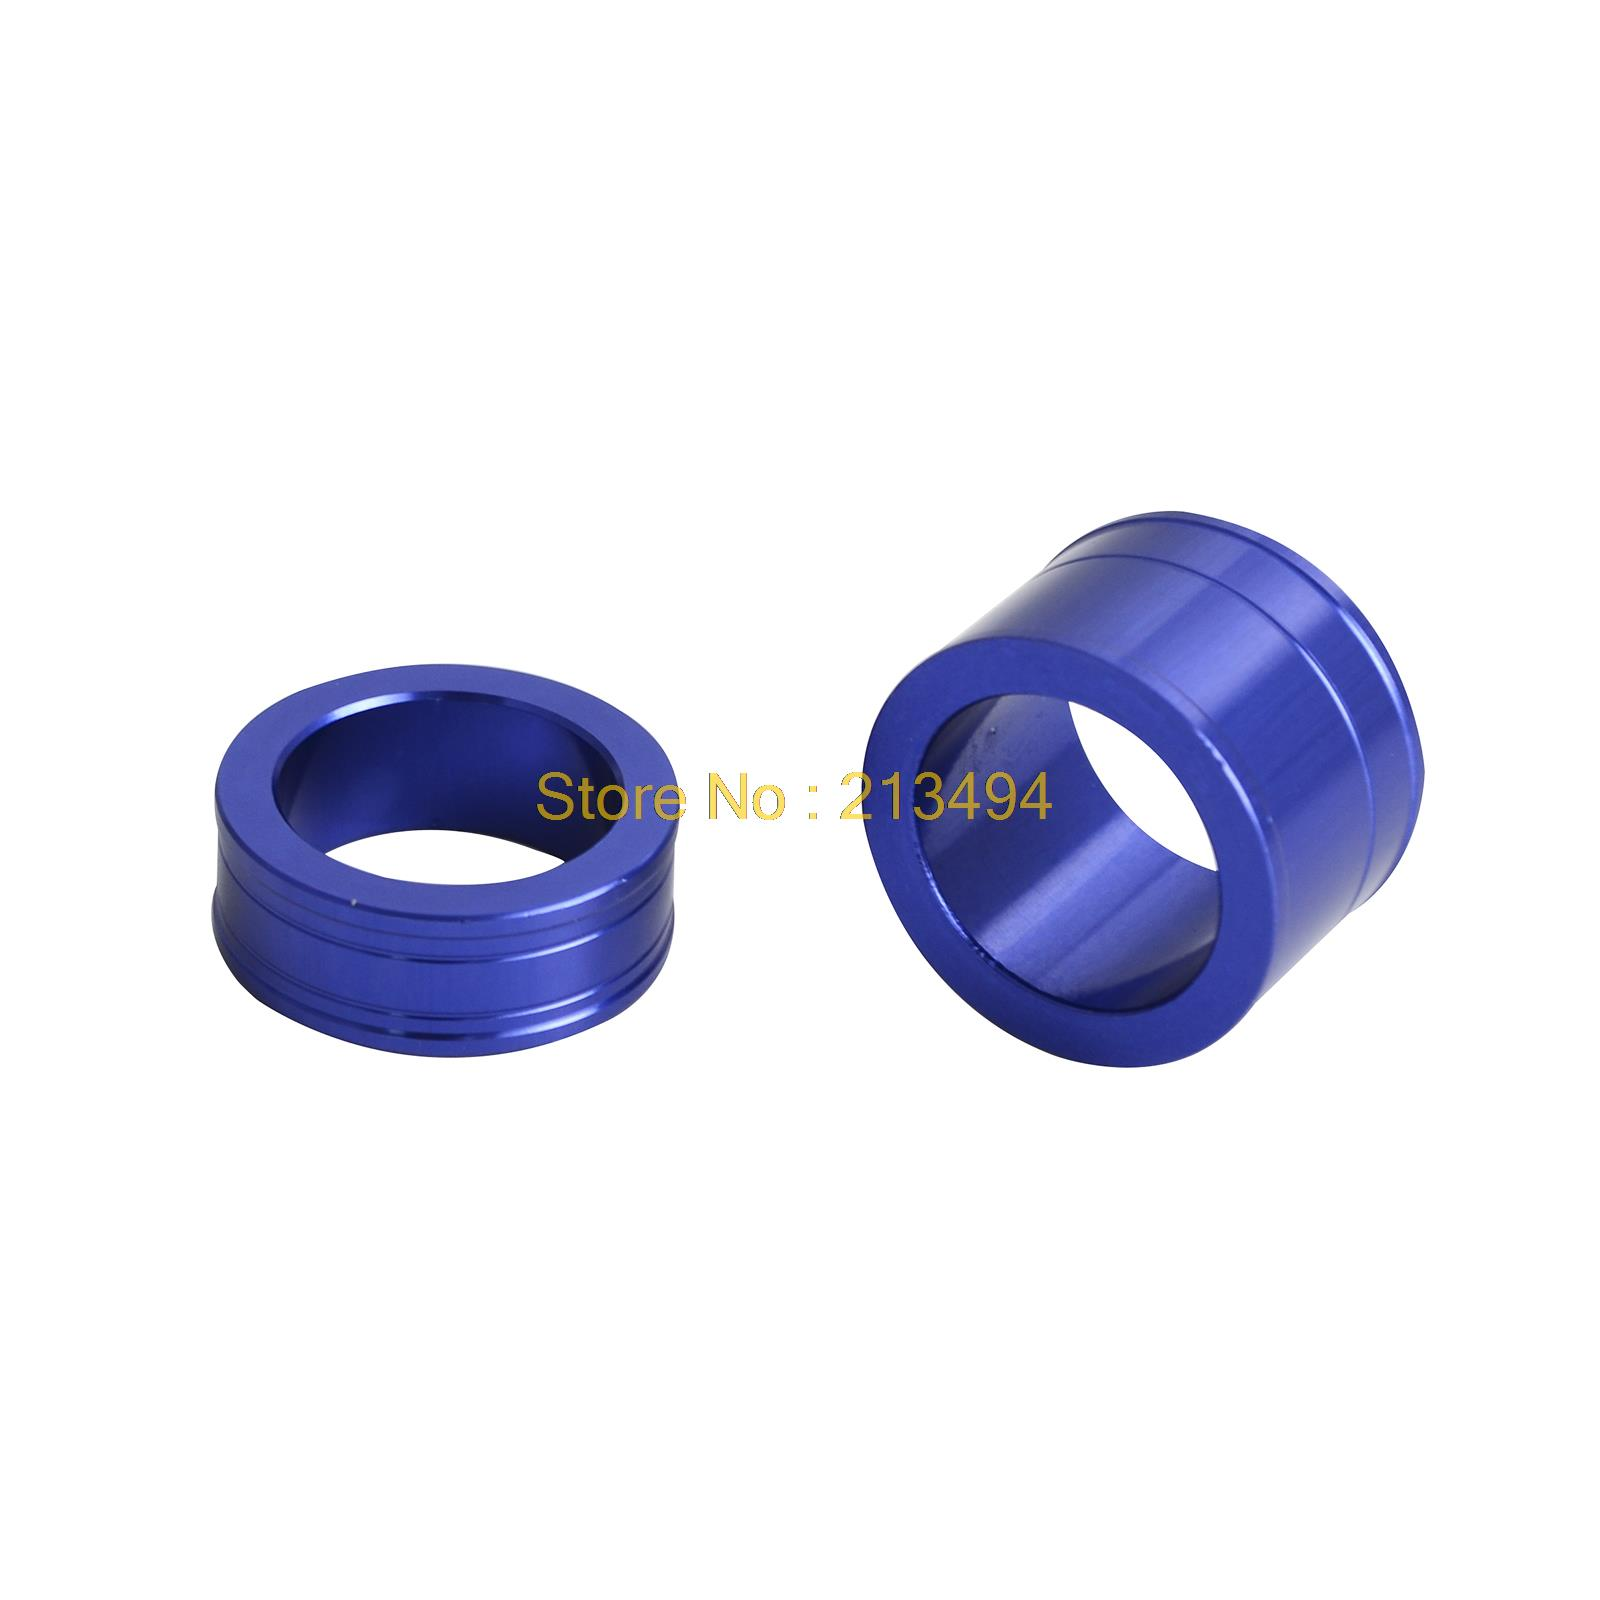 CNC Billet Aluminum Front Wheel Spacer Hub Collar For Yamaha YZ250F YZ450F 2014 2015 2016 2017 1 pair car aluminum wheel spacer adapter hub flange 6 139 7 25mm for toyota prado2700 3400 4000 4500